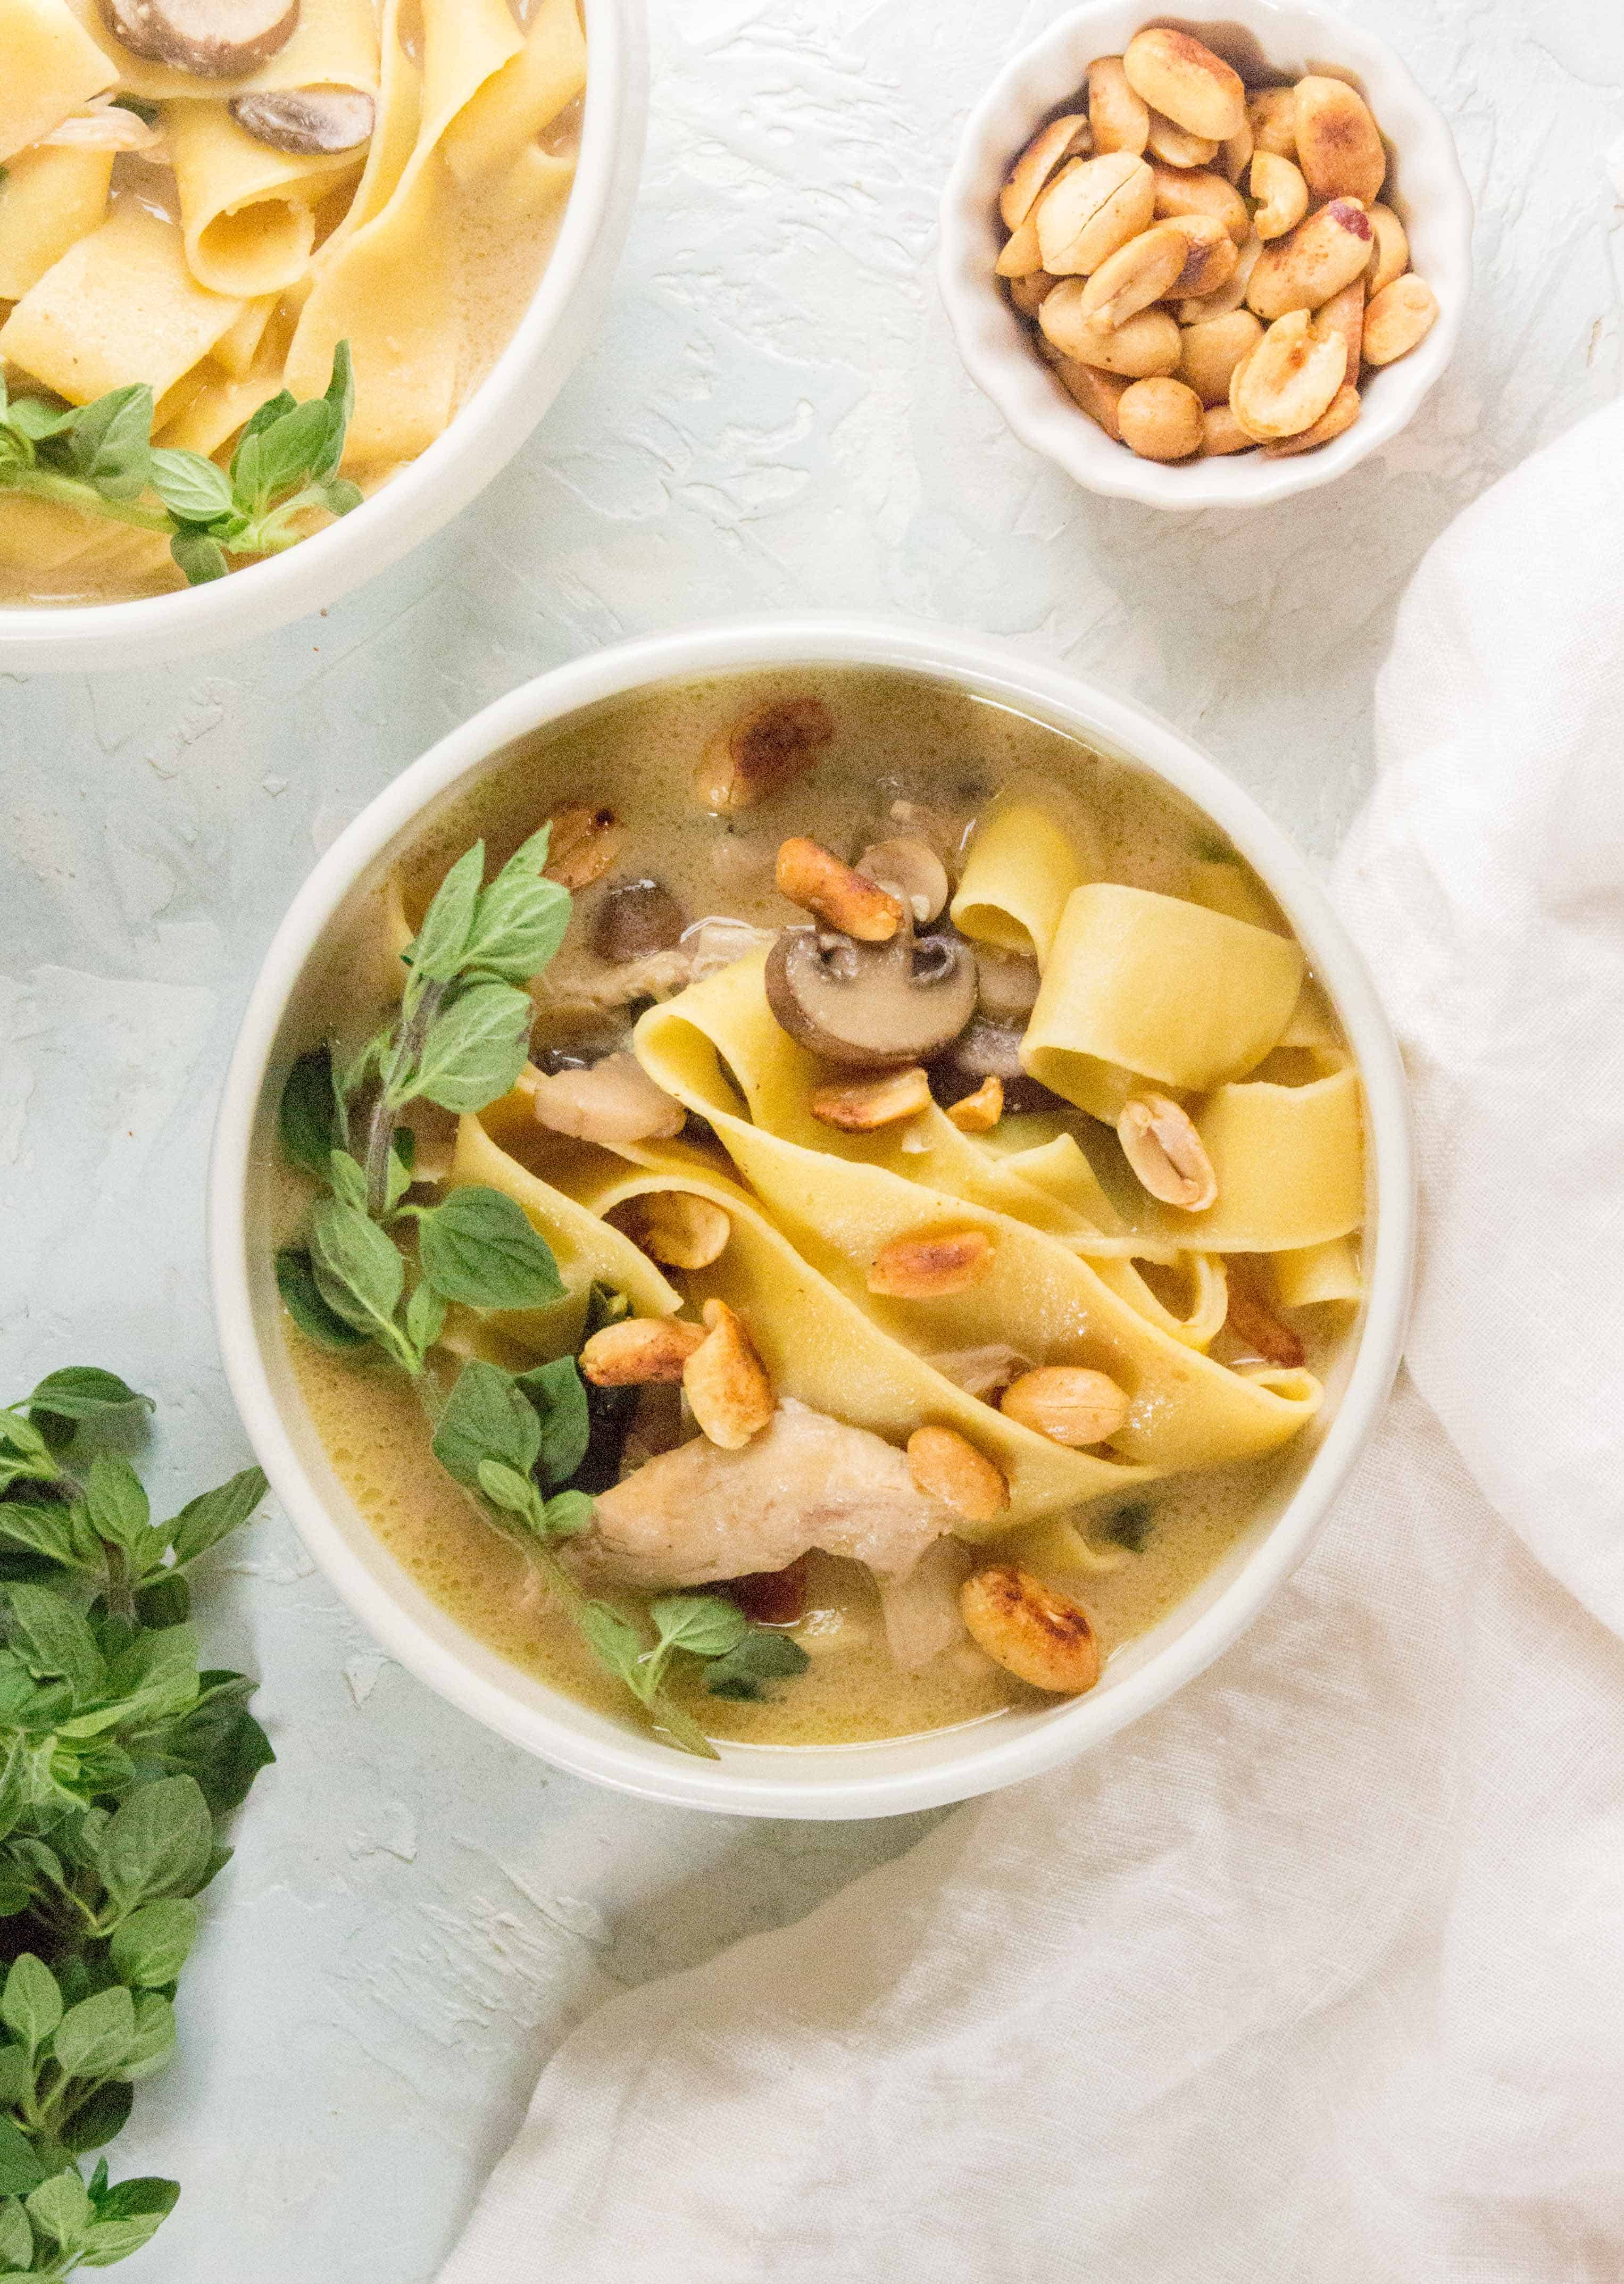 How To Make This Thai Inspired Chicken Noodle Soup